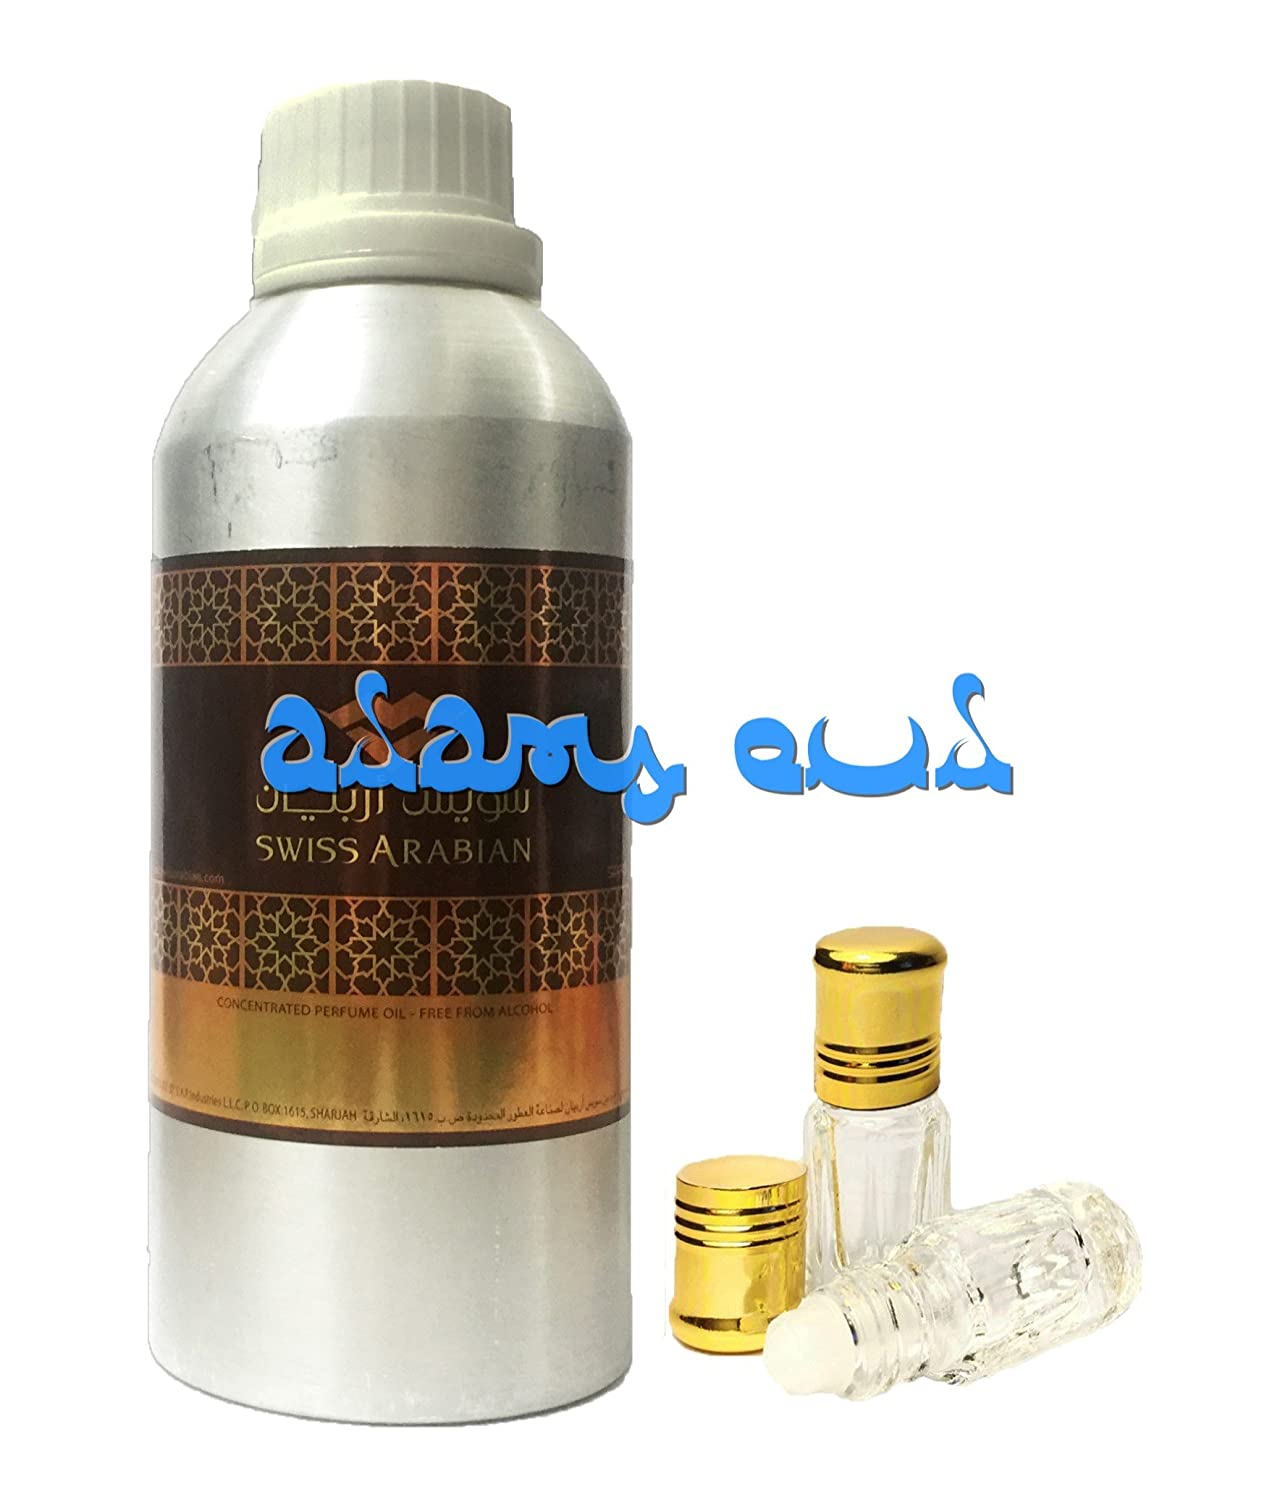 d'Hermes by Swiss Arabian - Concentrated 3ml Based Attar - Designer Perfumes (3ml6)